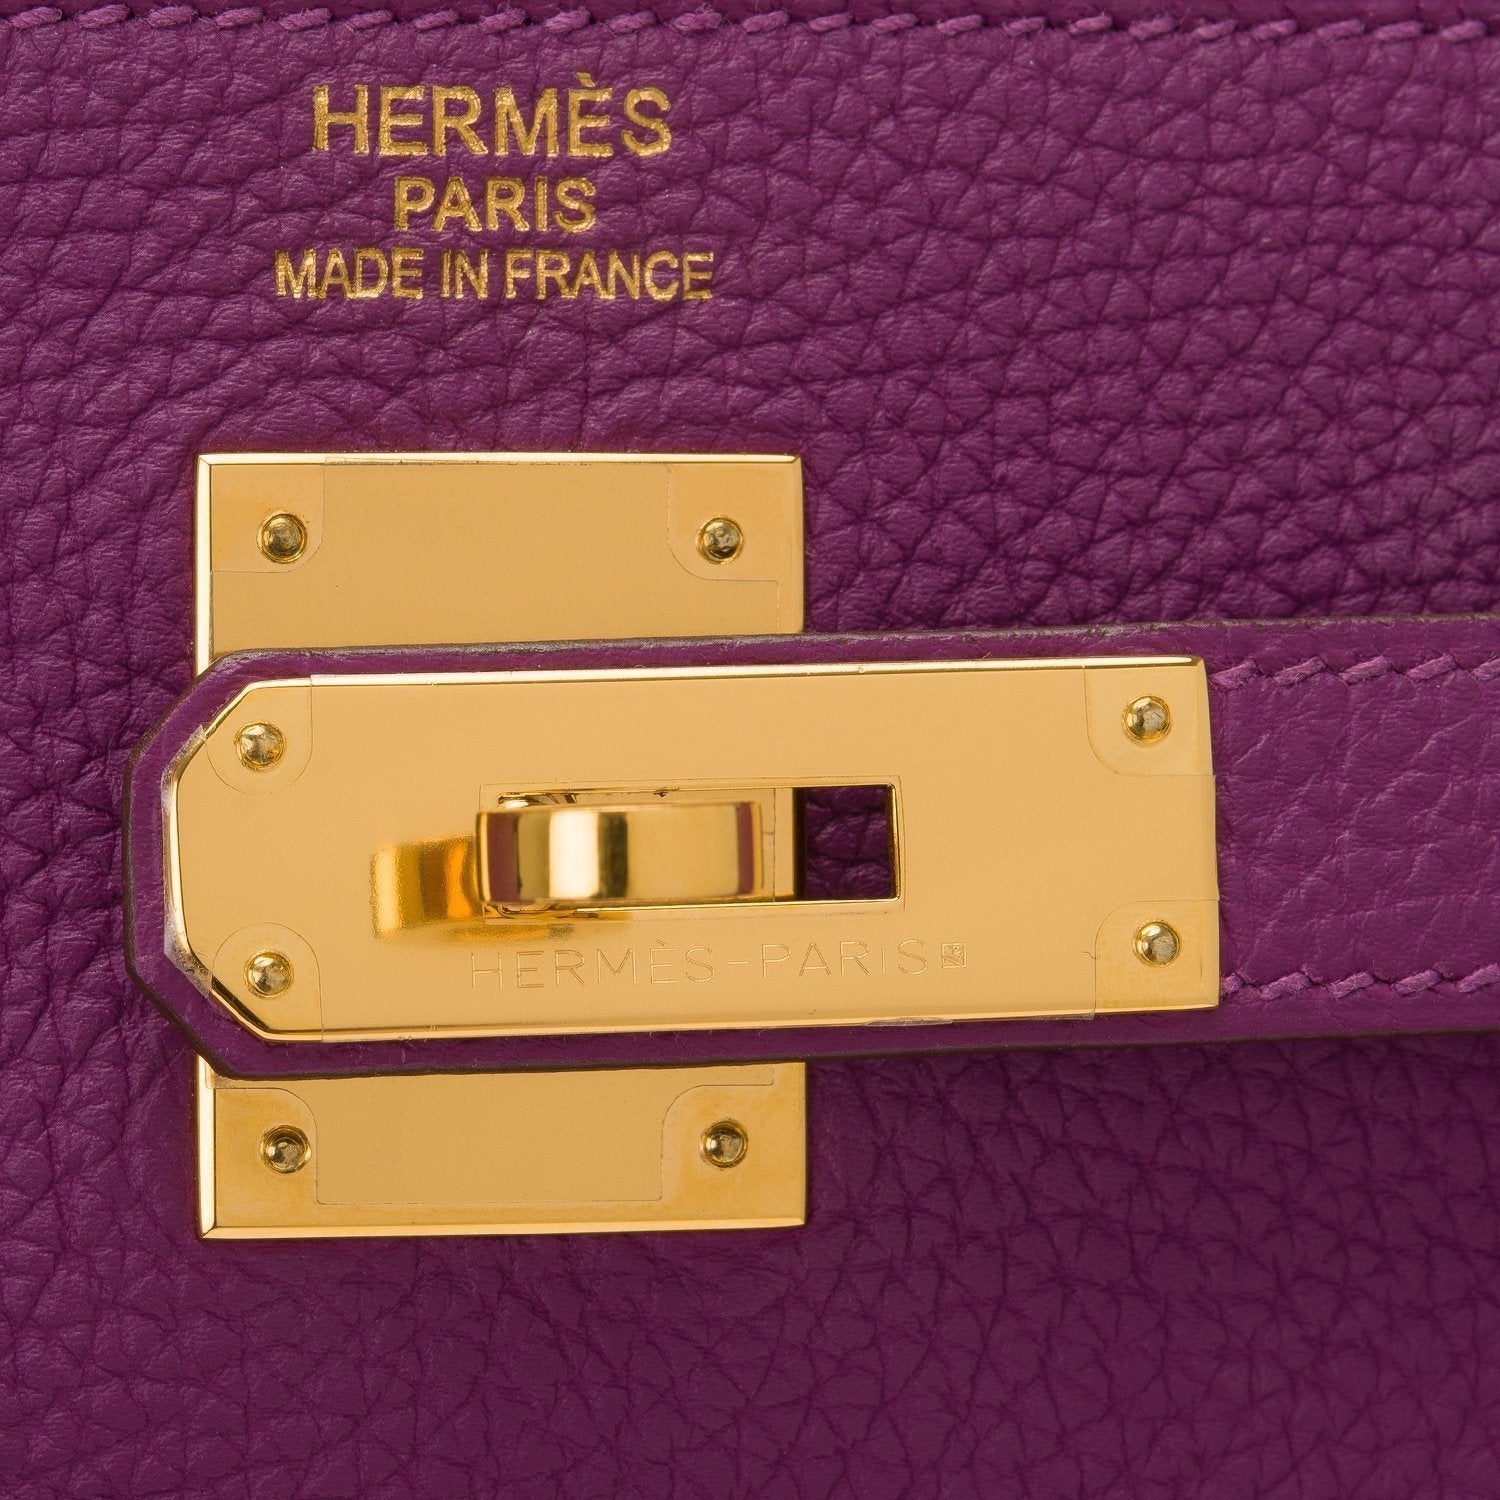 Hermes Anemone Togo Retourne Kelly 35Cm Gold Hardware Preloved Mint Handbags